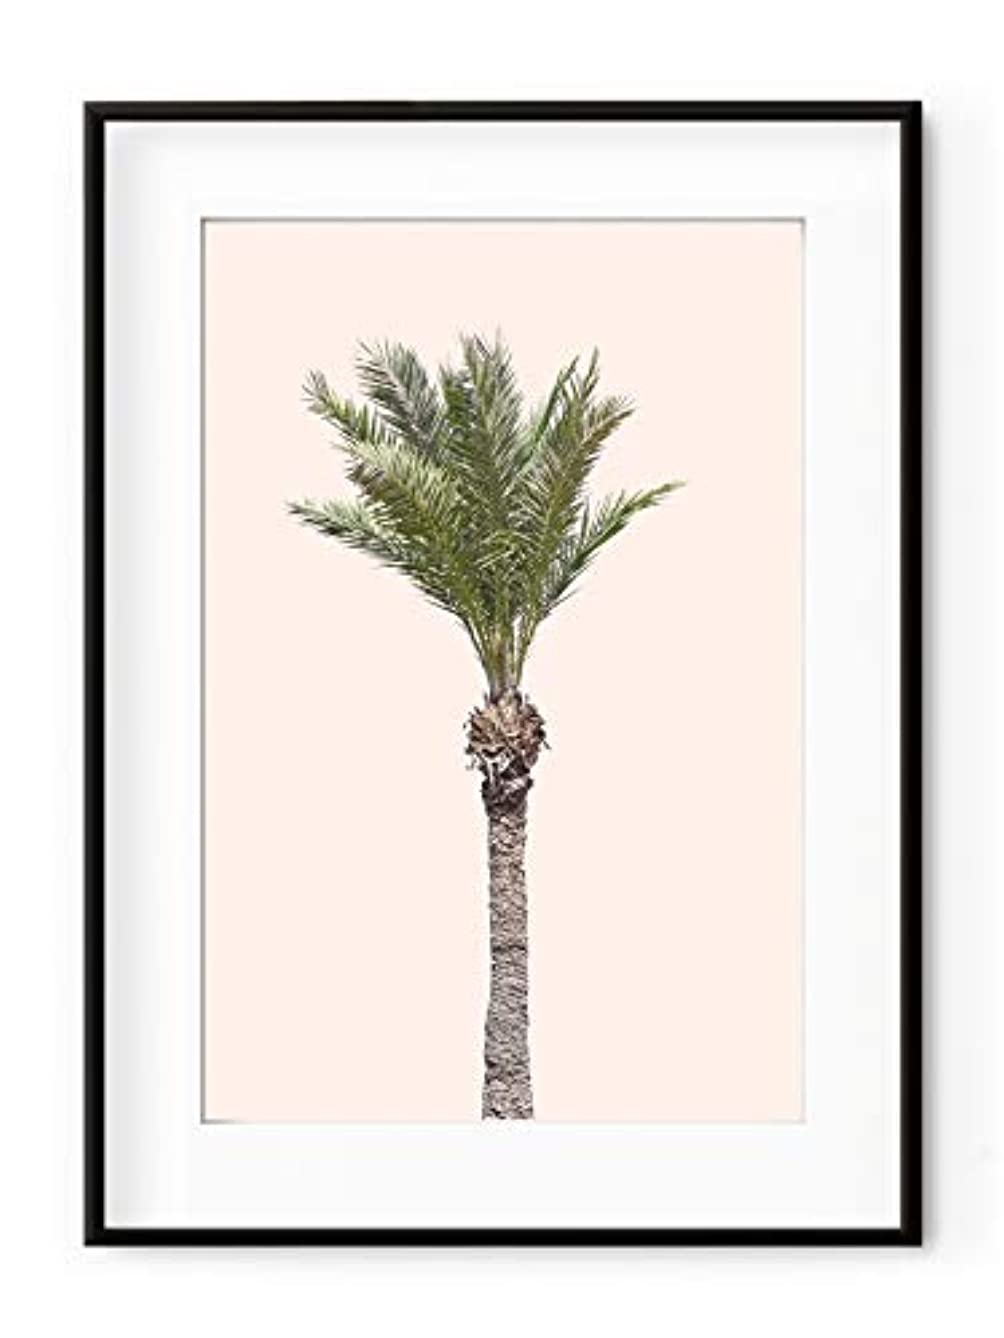 Palm Tree on Pink Background with White Lacquer Wooden Frame and Mount, Multicolored, 50x70